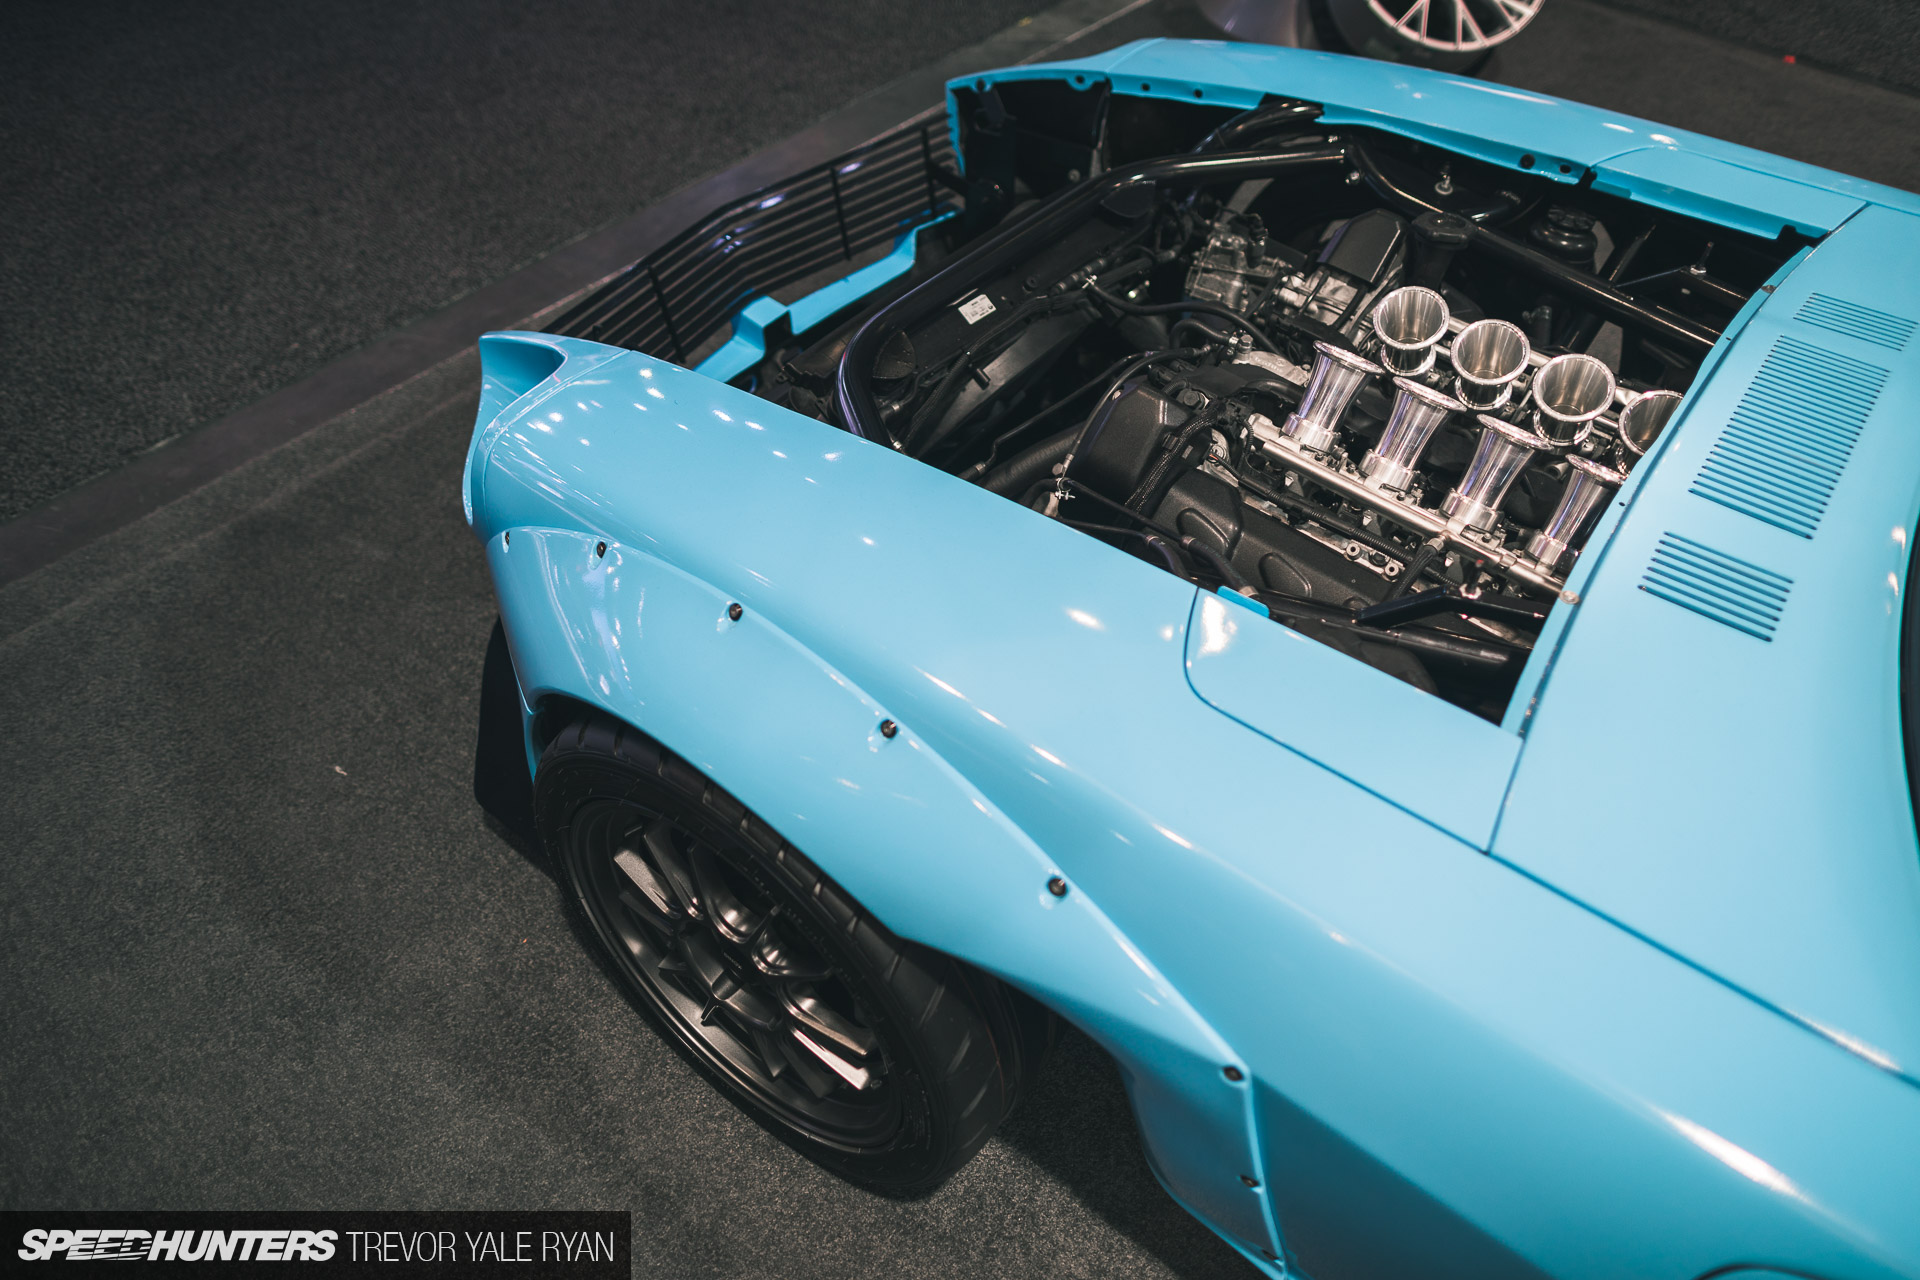 That S Not A V8 The Bmw V10 Powered 240z Speedhunters